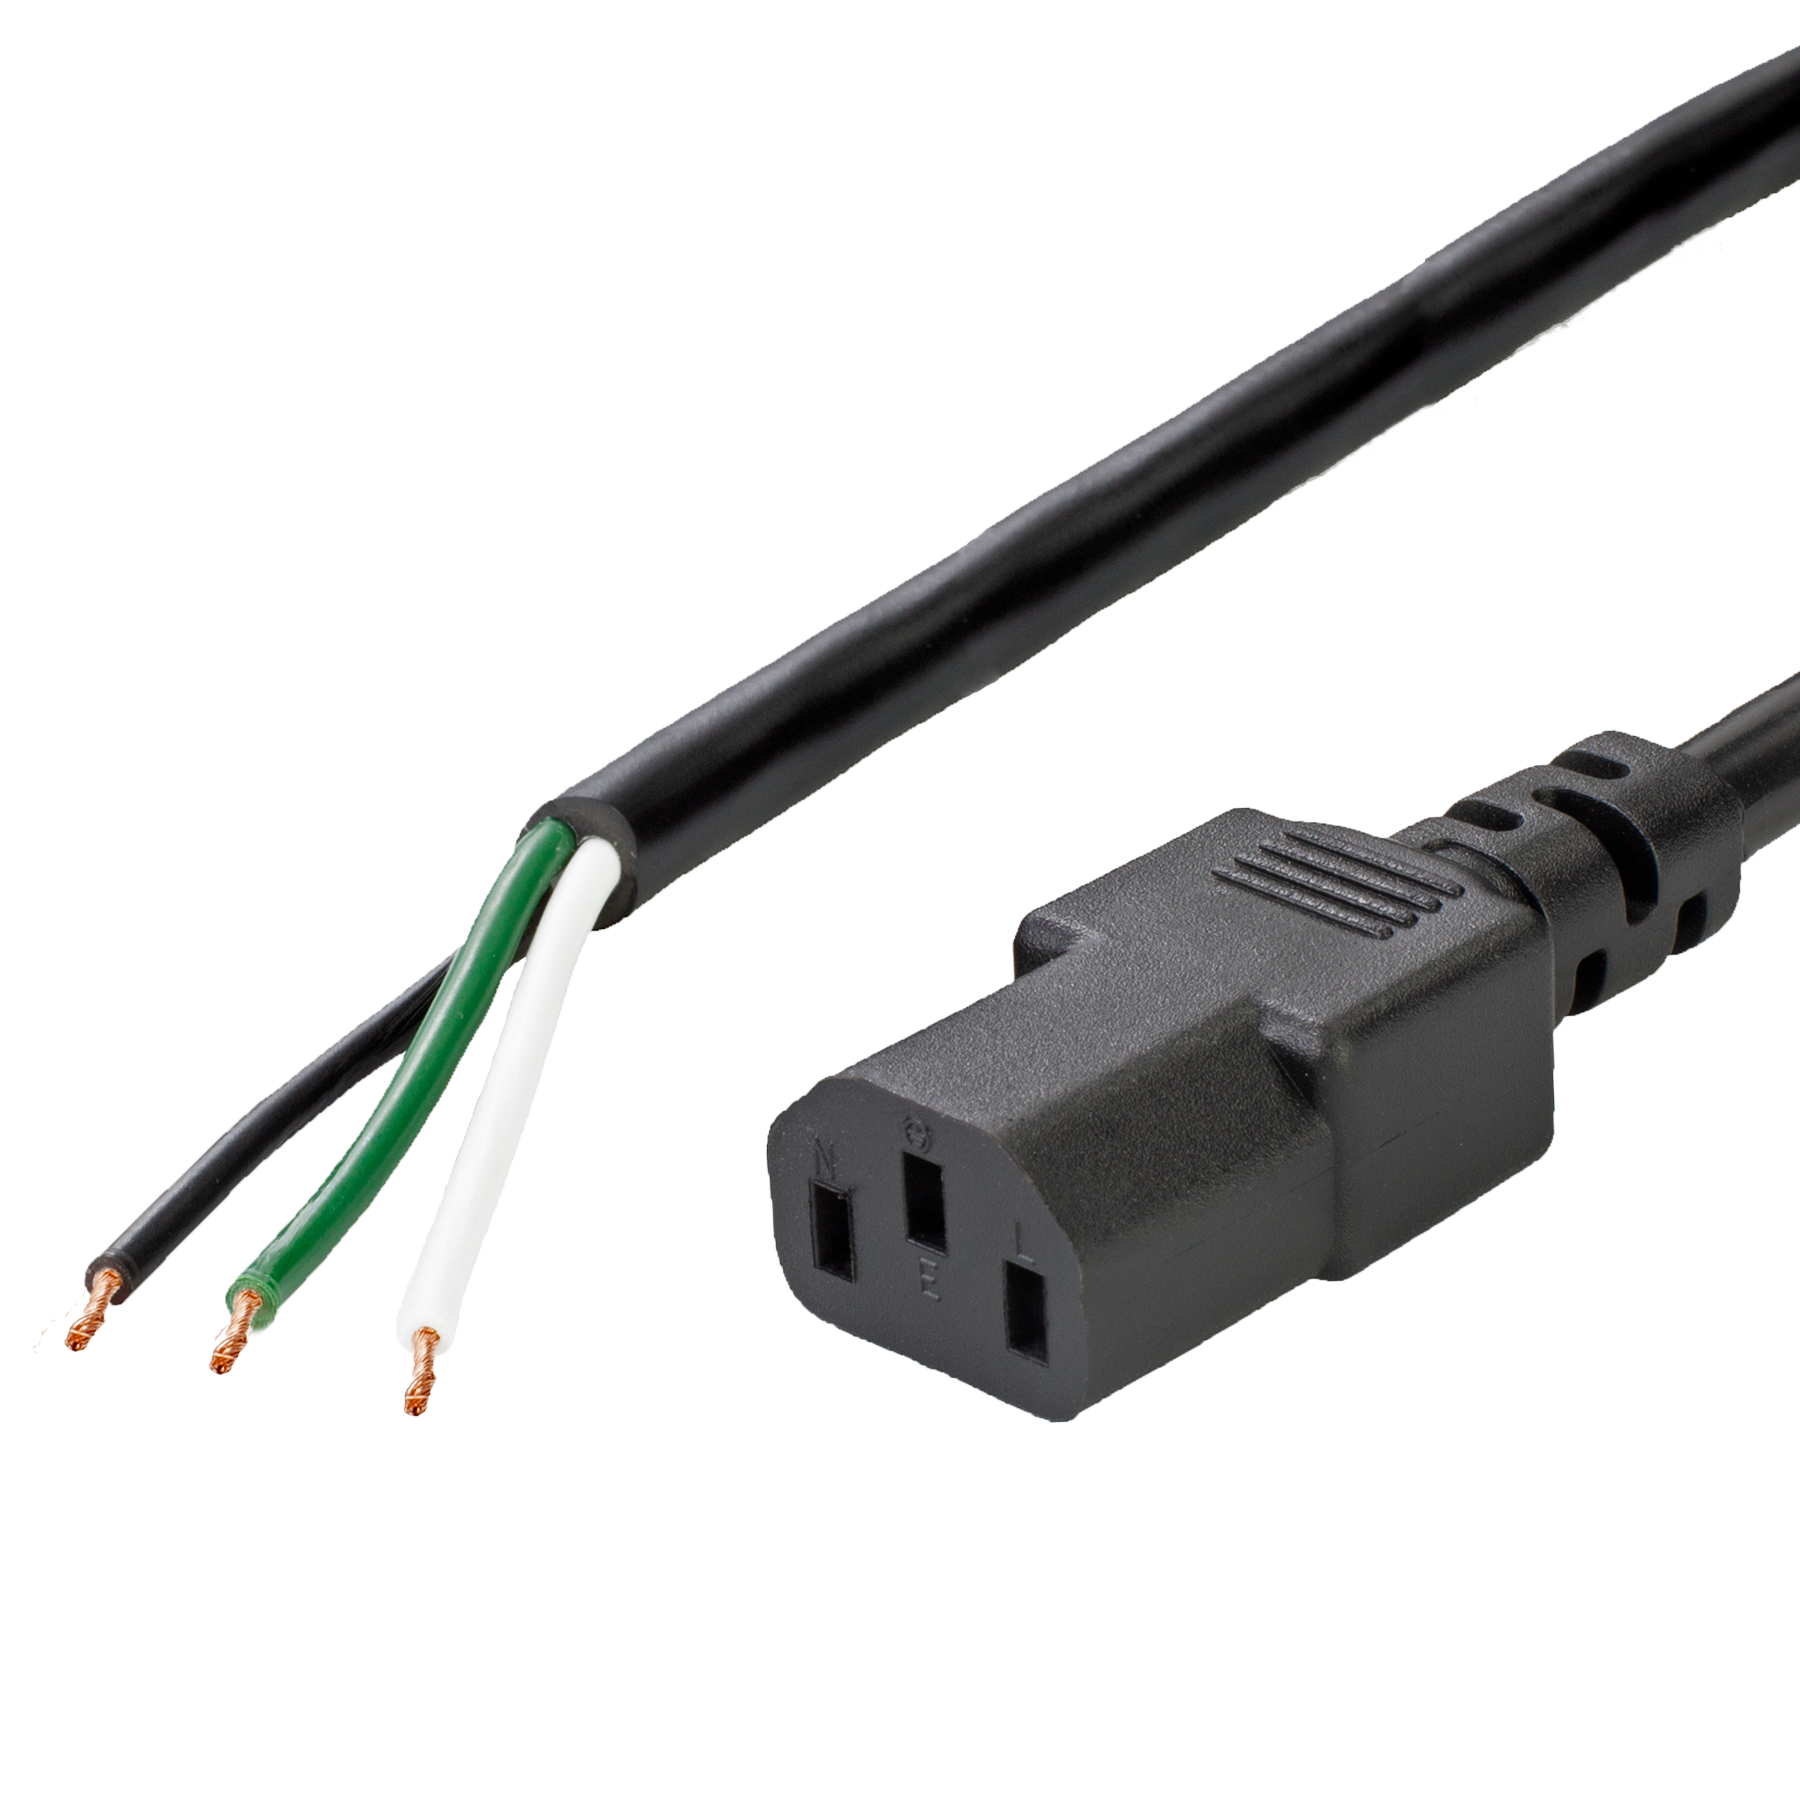 9FT Open to C13, 13A 16/3 SJT, Black Power Supply Cord